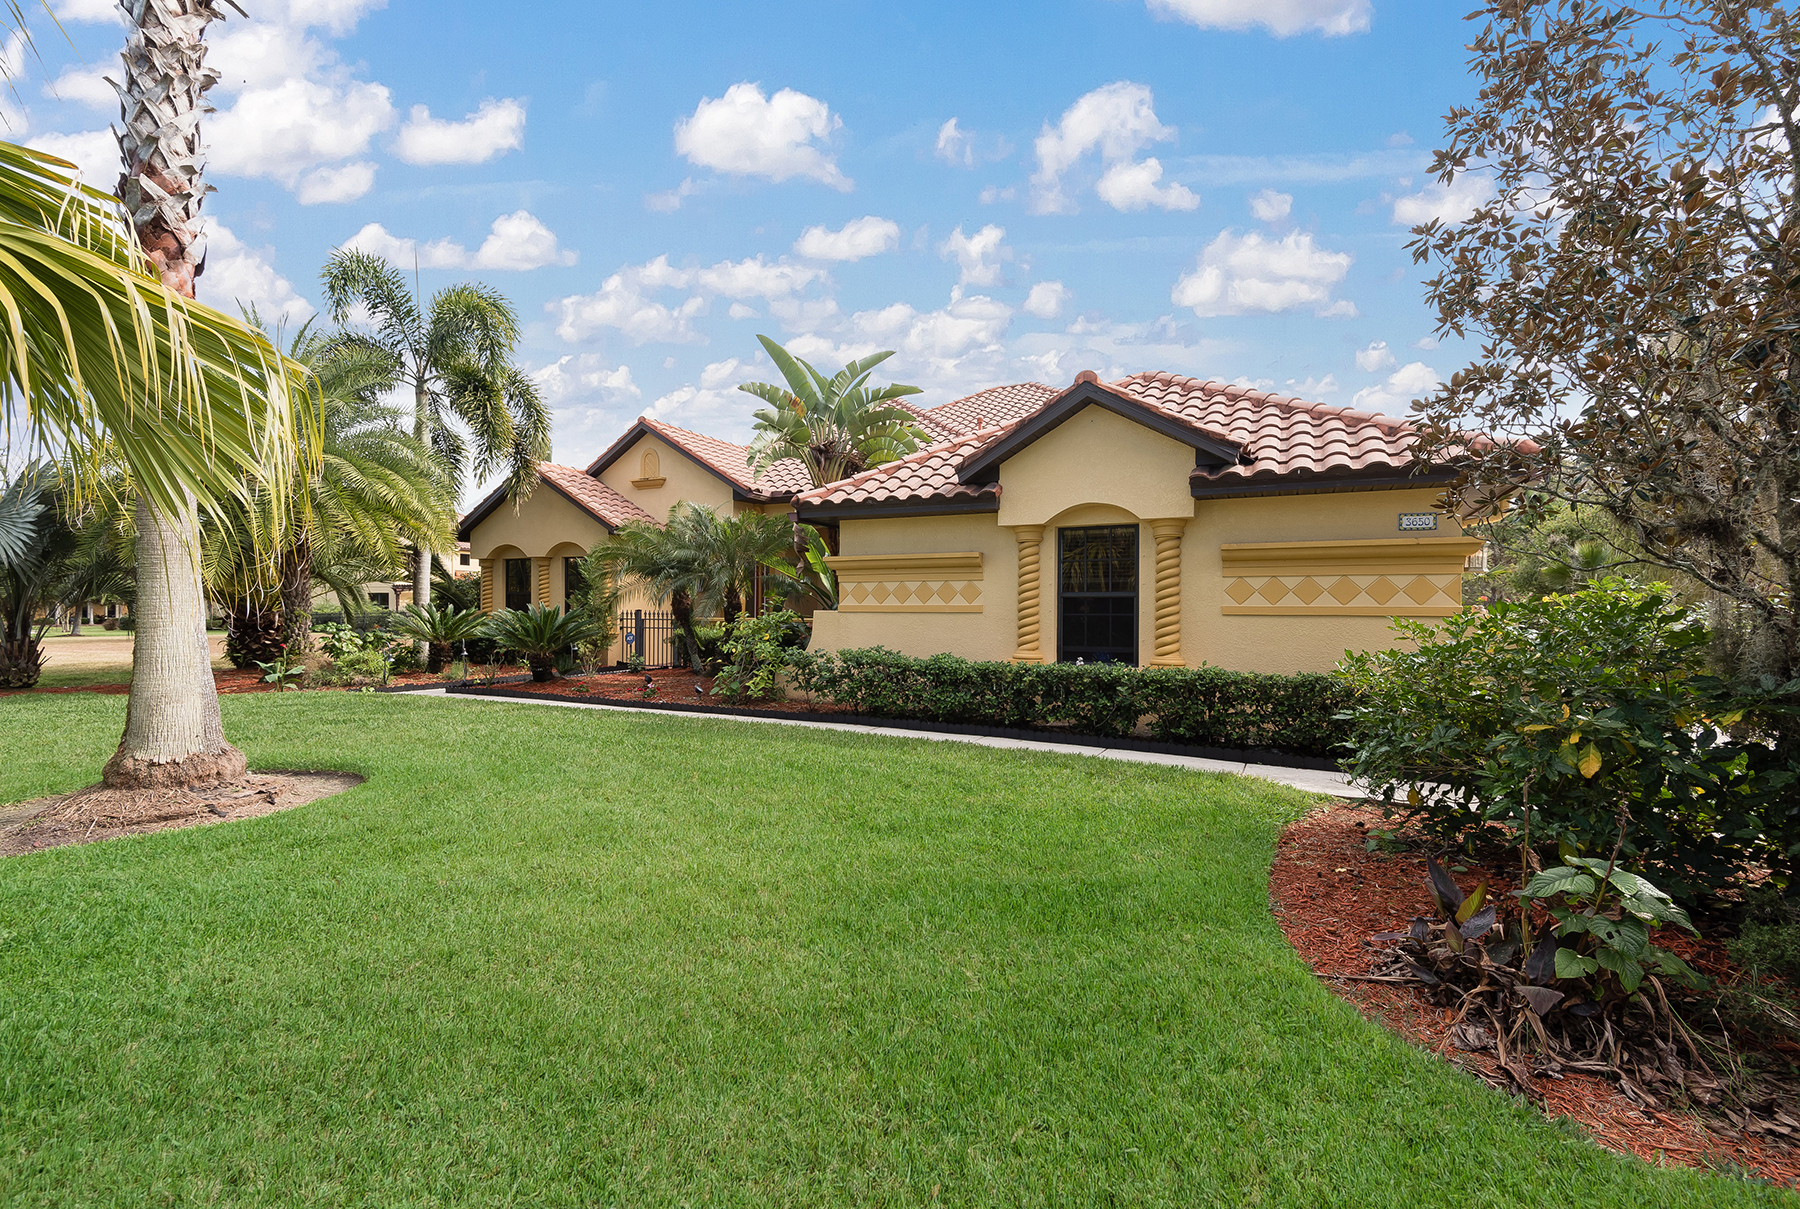 Casa Unifamiliar por un Venta en LAND O LAKES 3650 Marbury Ct Land O' Lakes, Florida, 34638 Estados Unidos